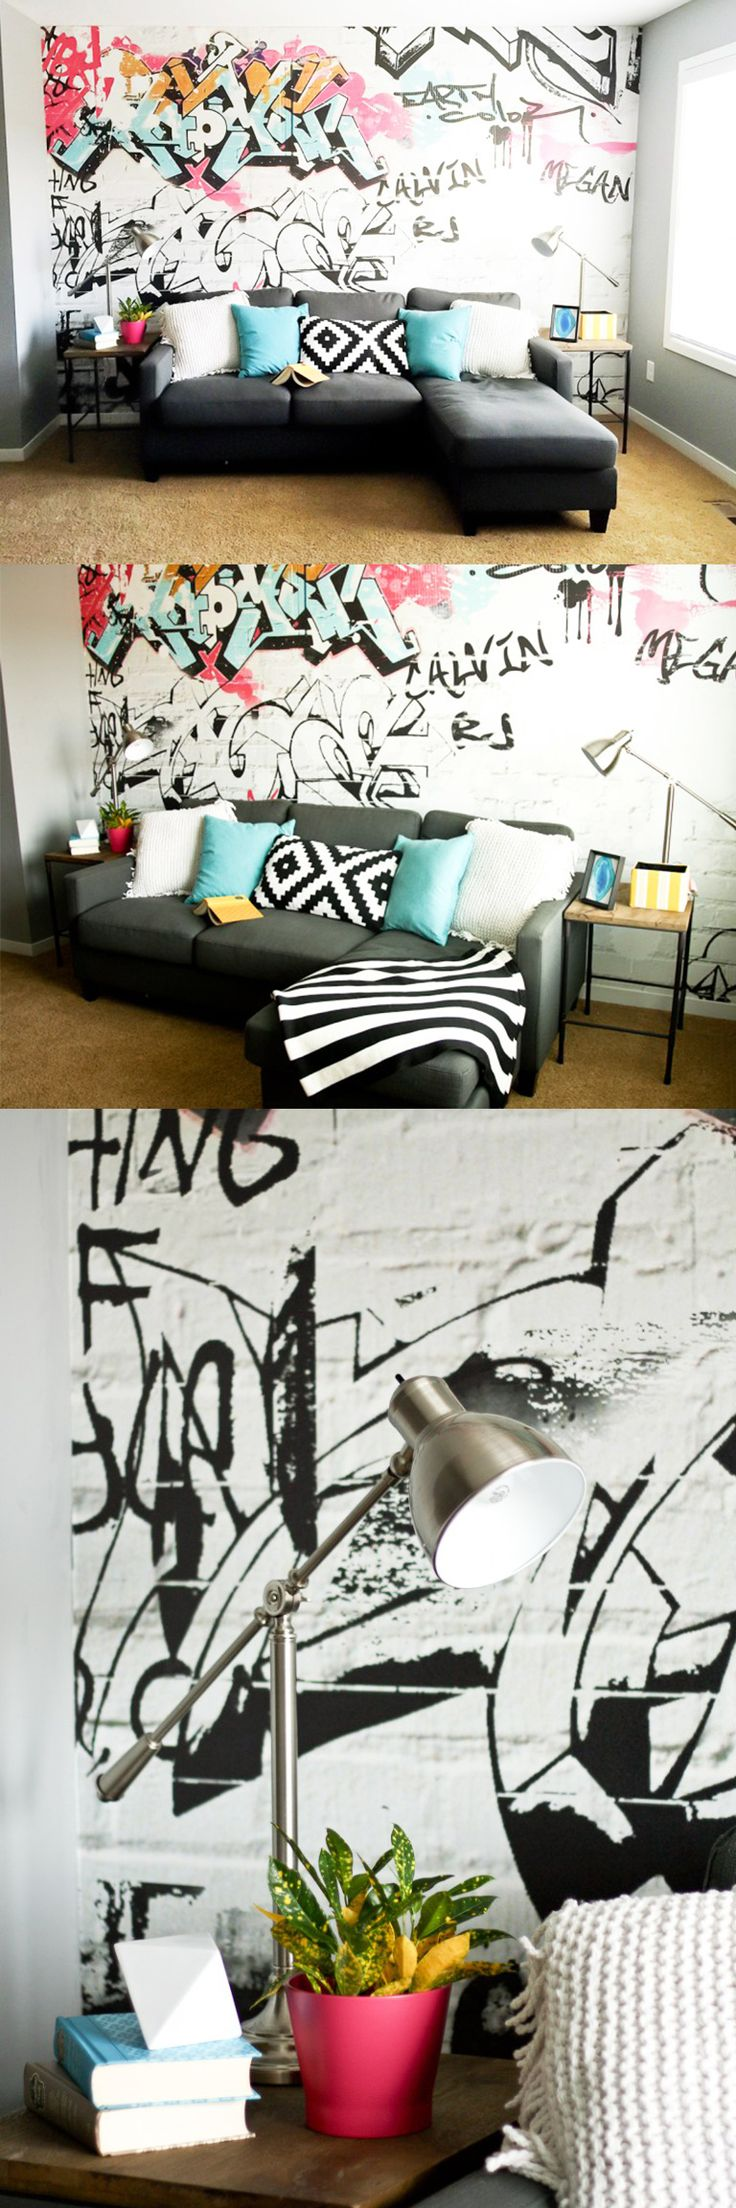 251 best images about urban art interiors on pinterest for Graffiti style bedroom designs